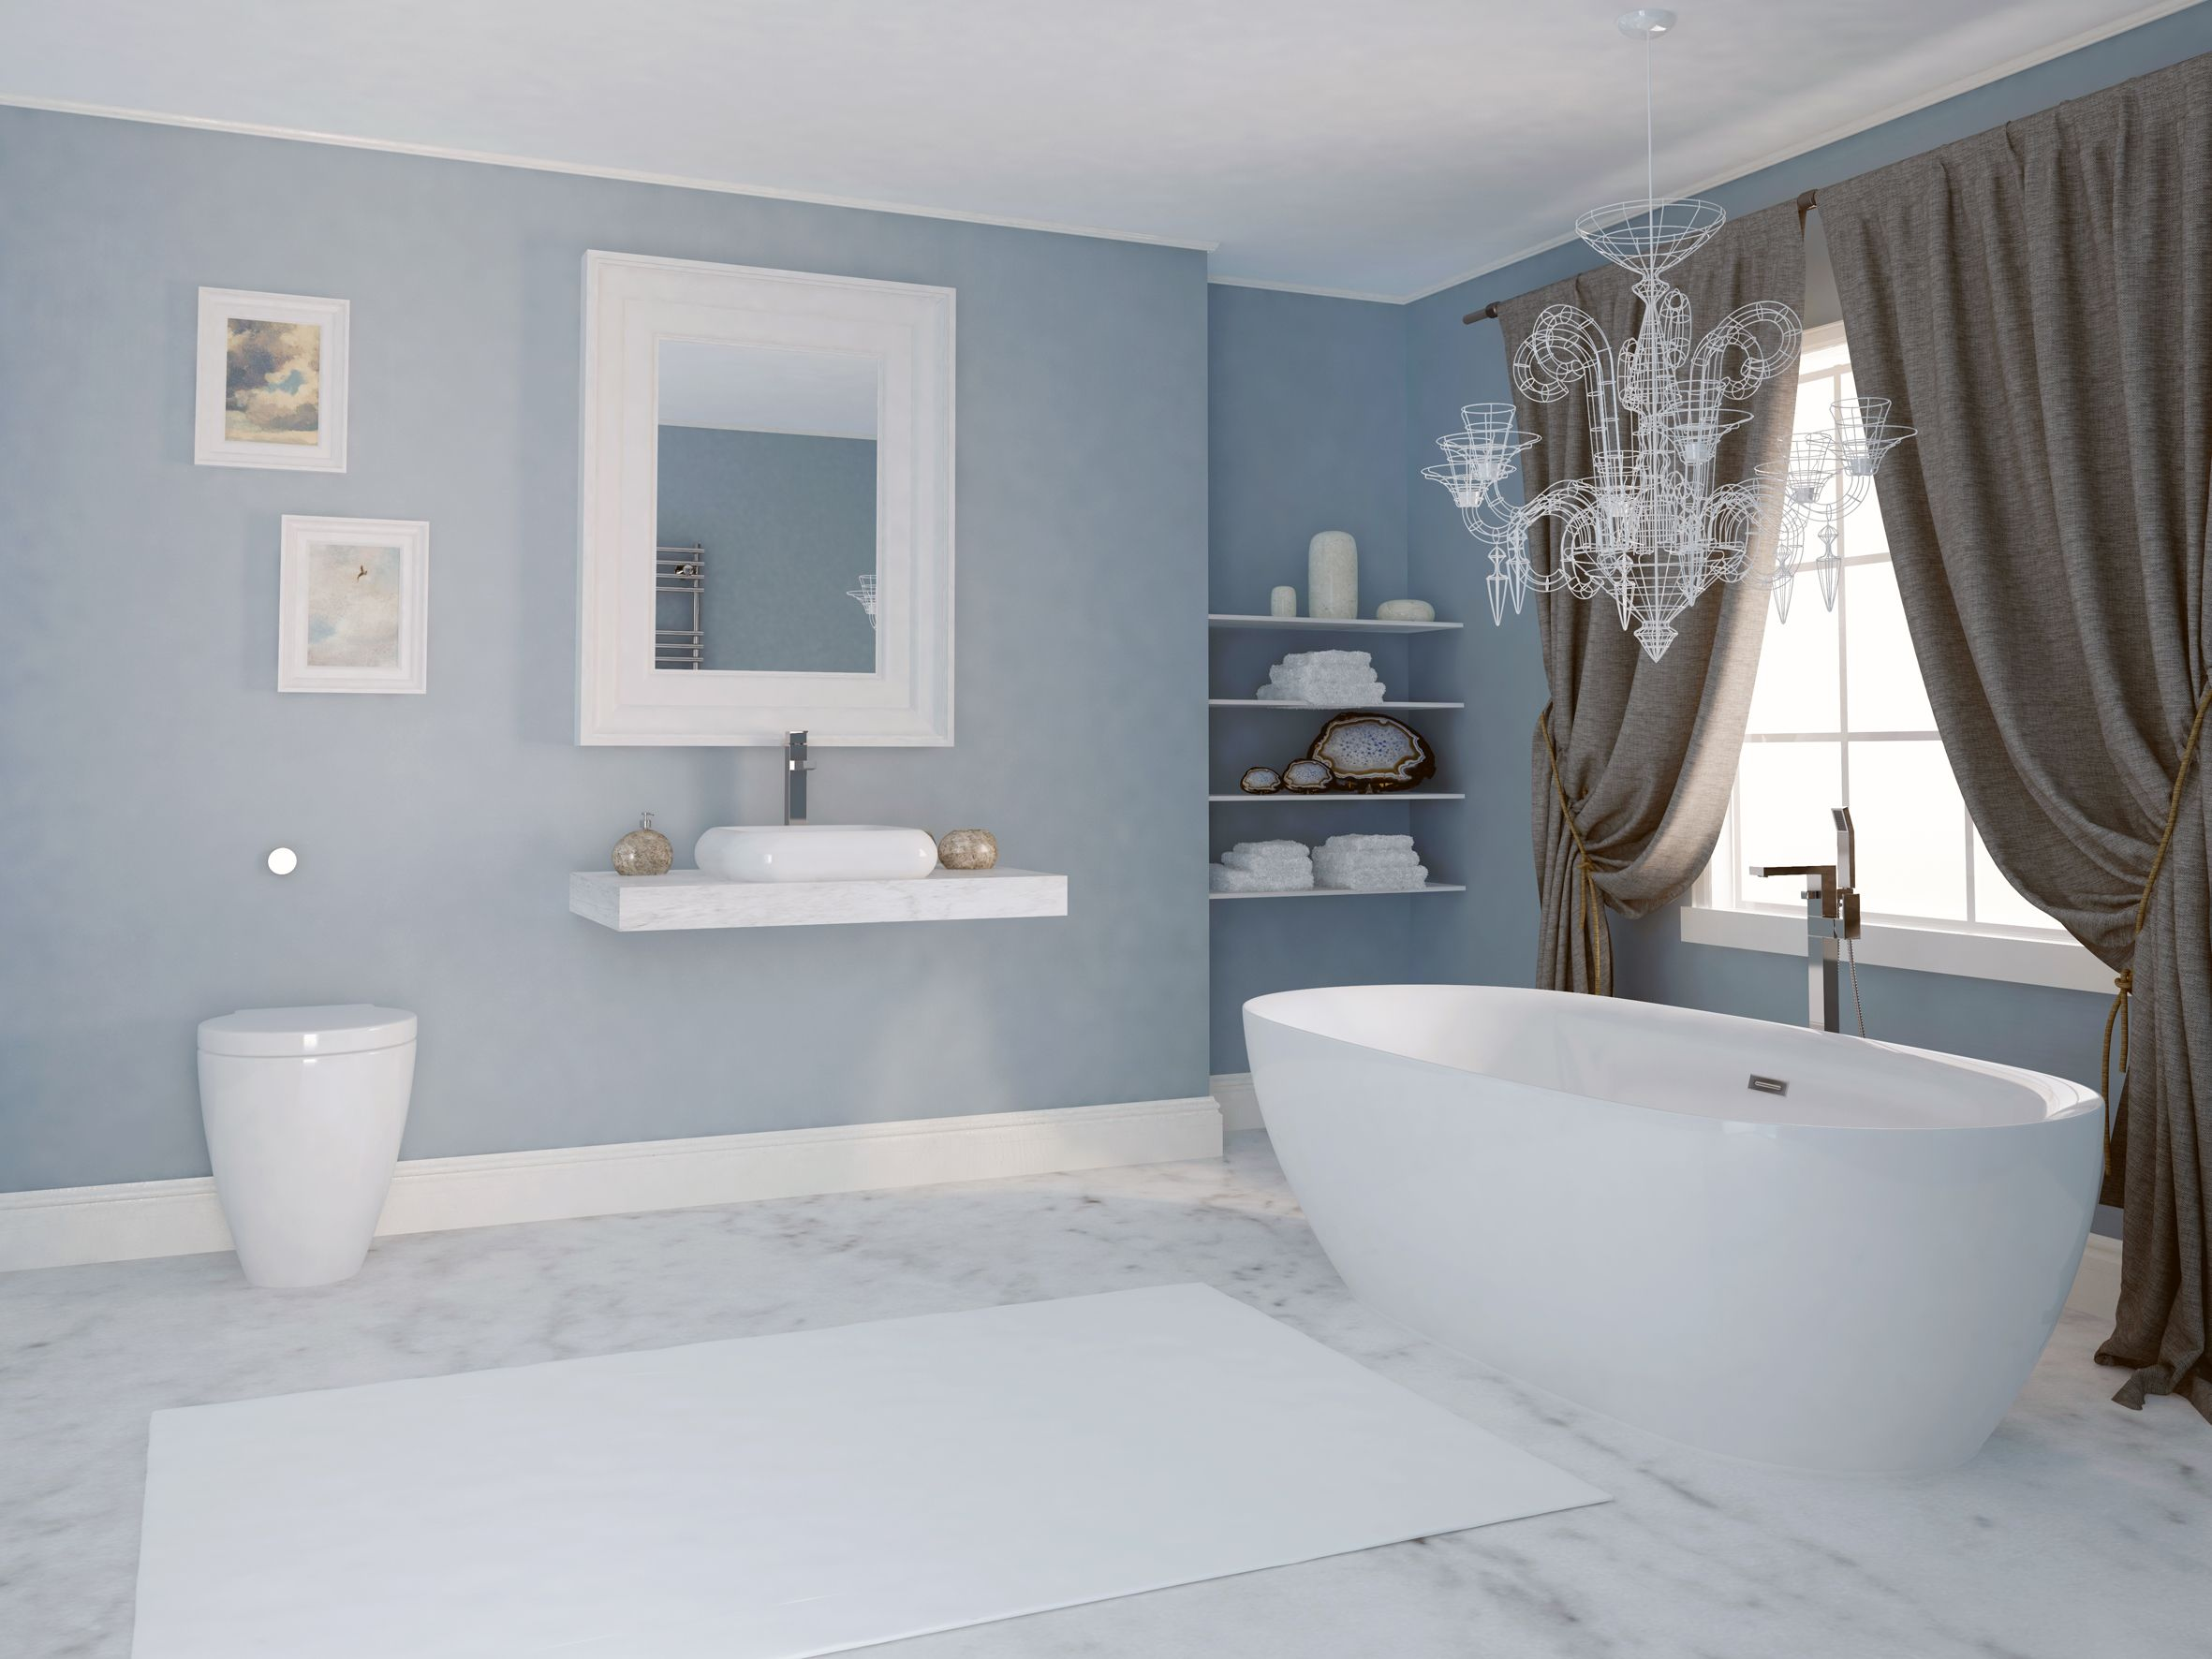 Inspiration from Bathrooms.com: Natural elements and materials such ...